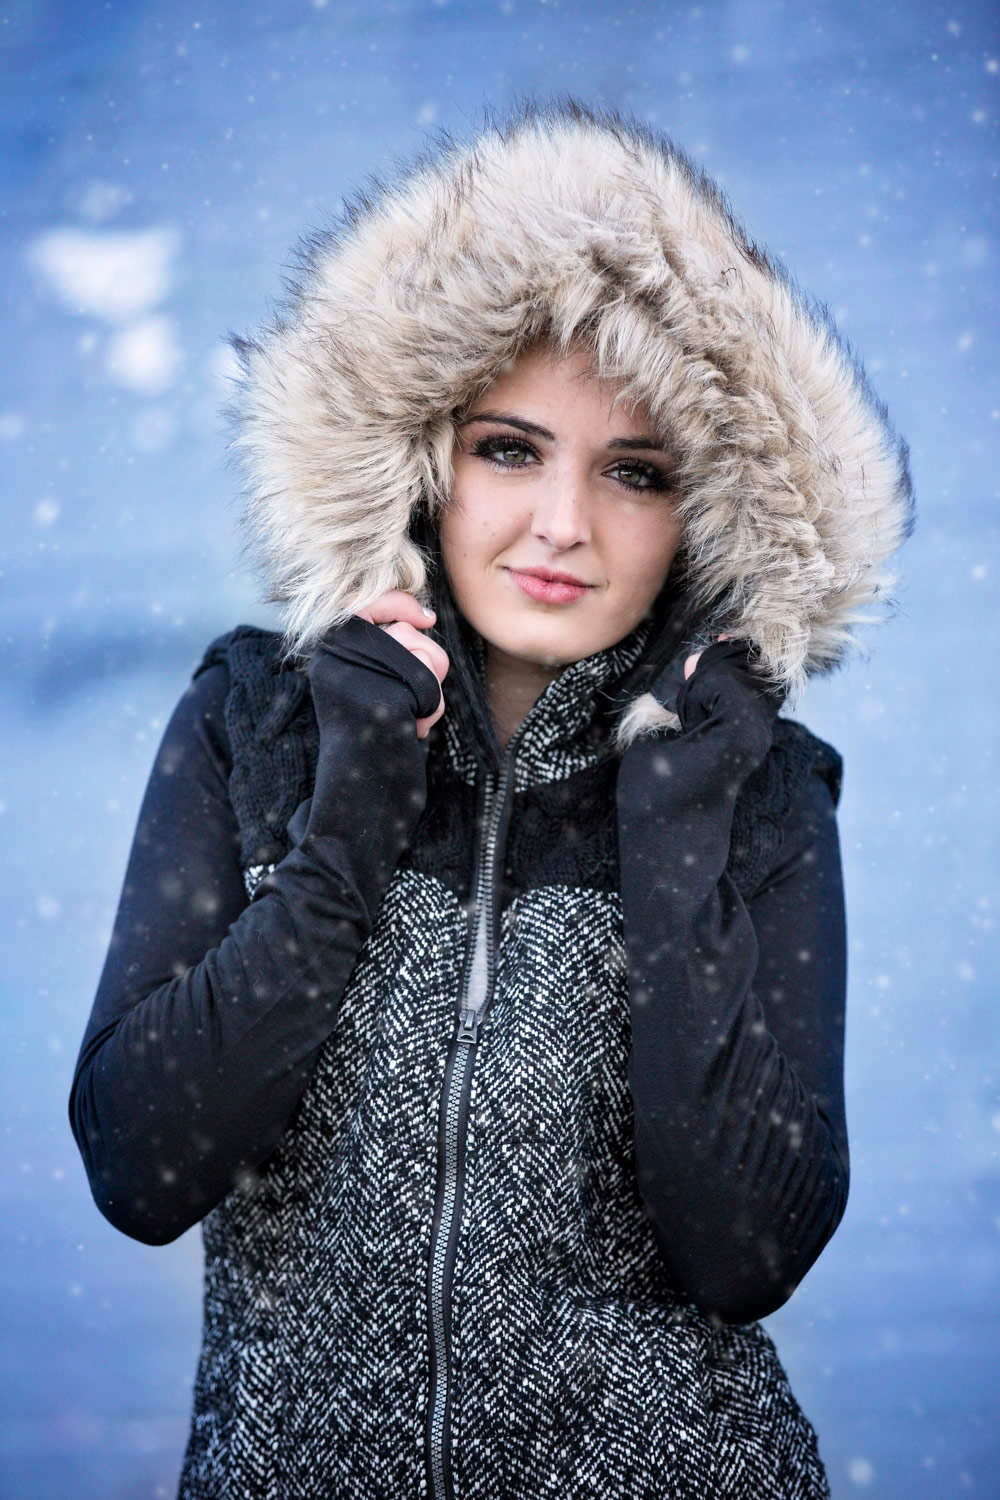 Oklaohma-Senior-Photographer-Amanda-Lynn-Snow-Photo-Oklahoma-City.jpg